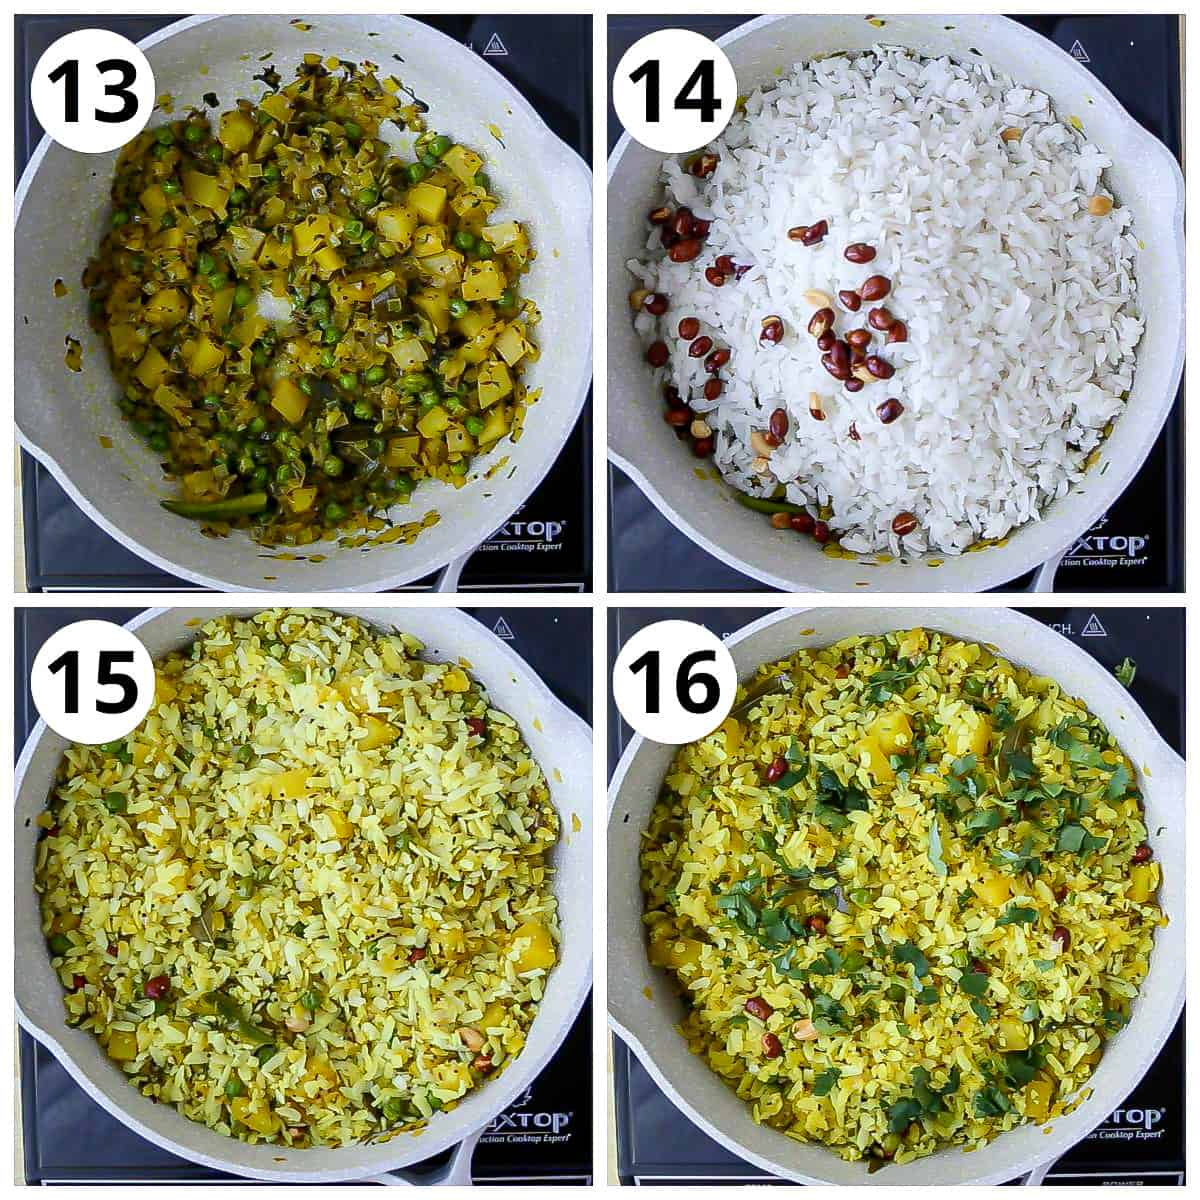 Final steps to add poha to the masala and mixing